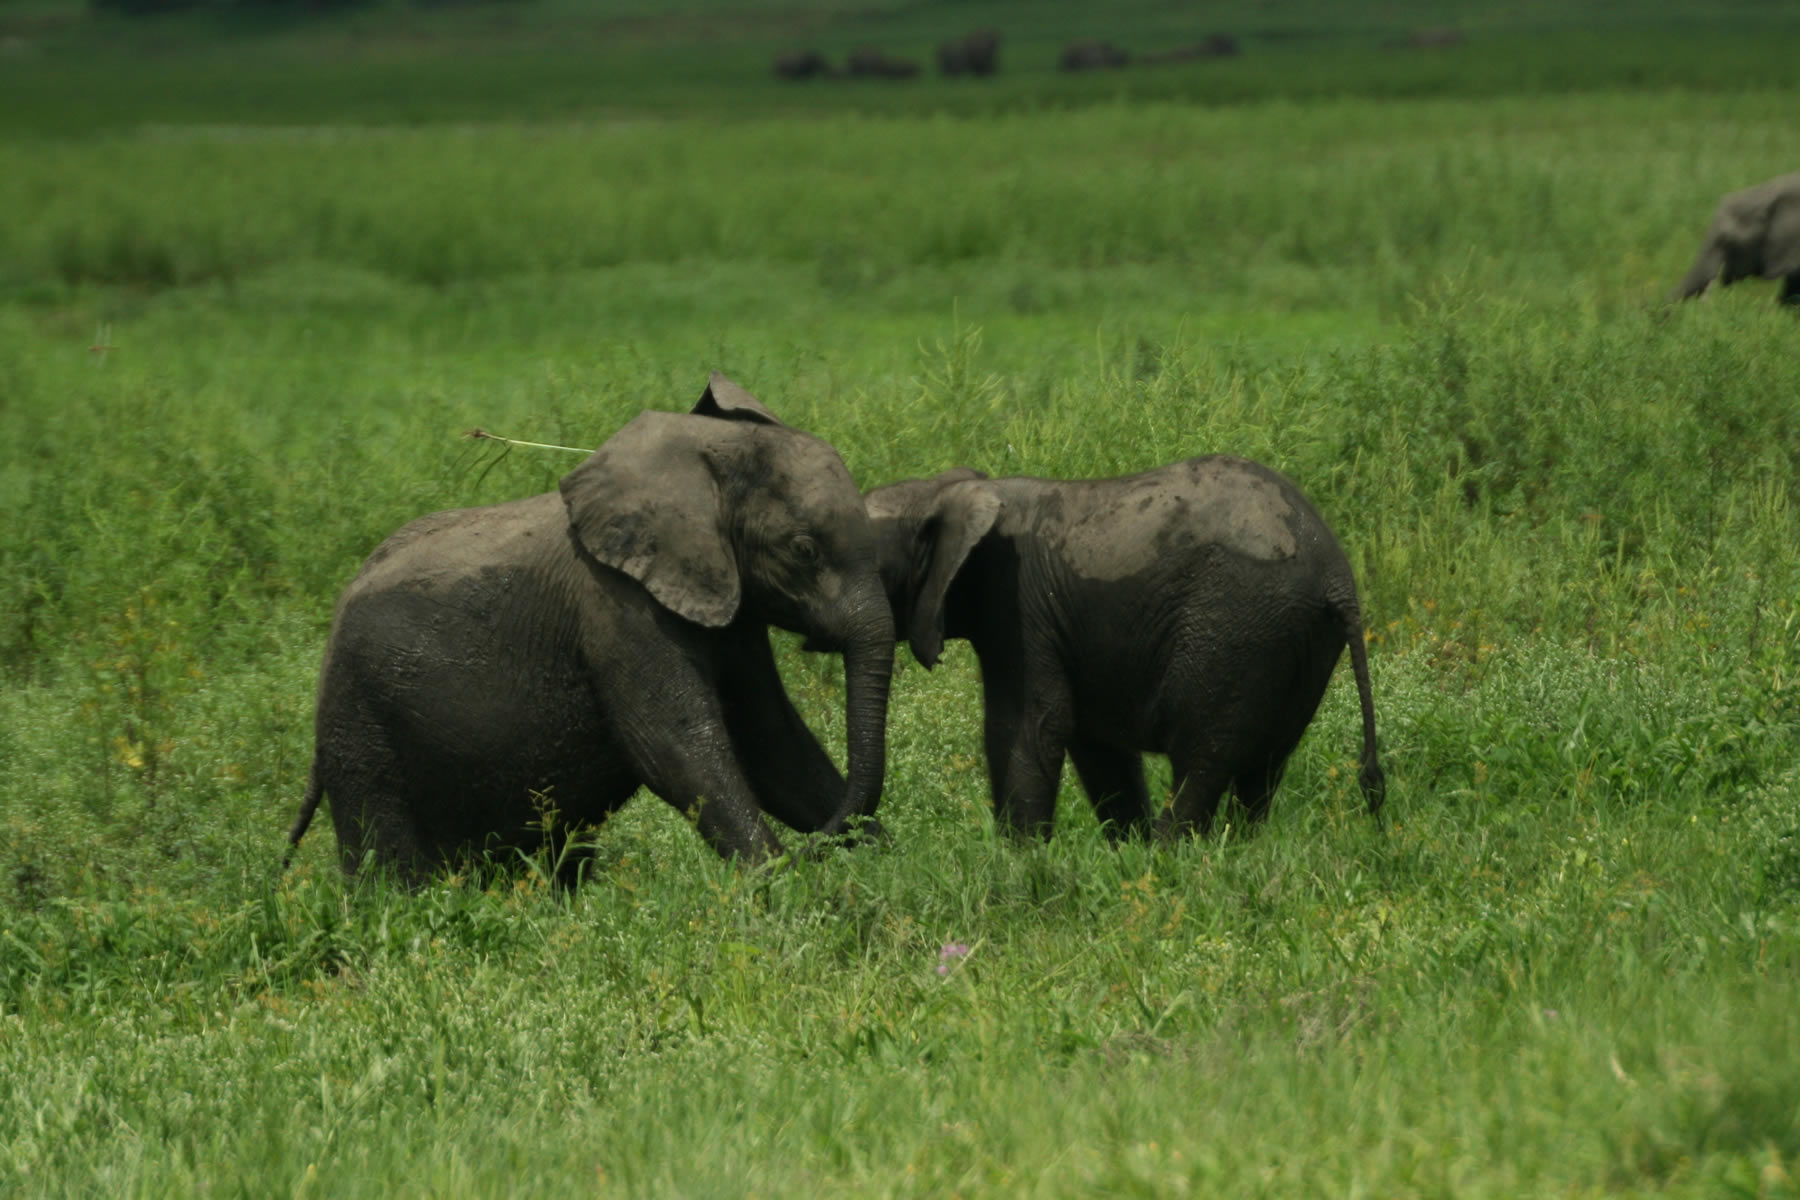 Baby Elephant Wallpapers Cool Digital Photography 1800x1200